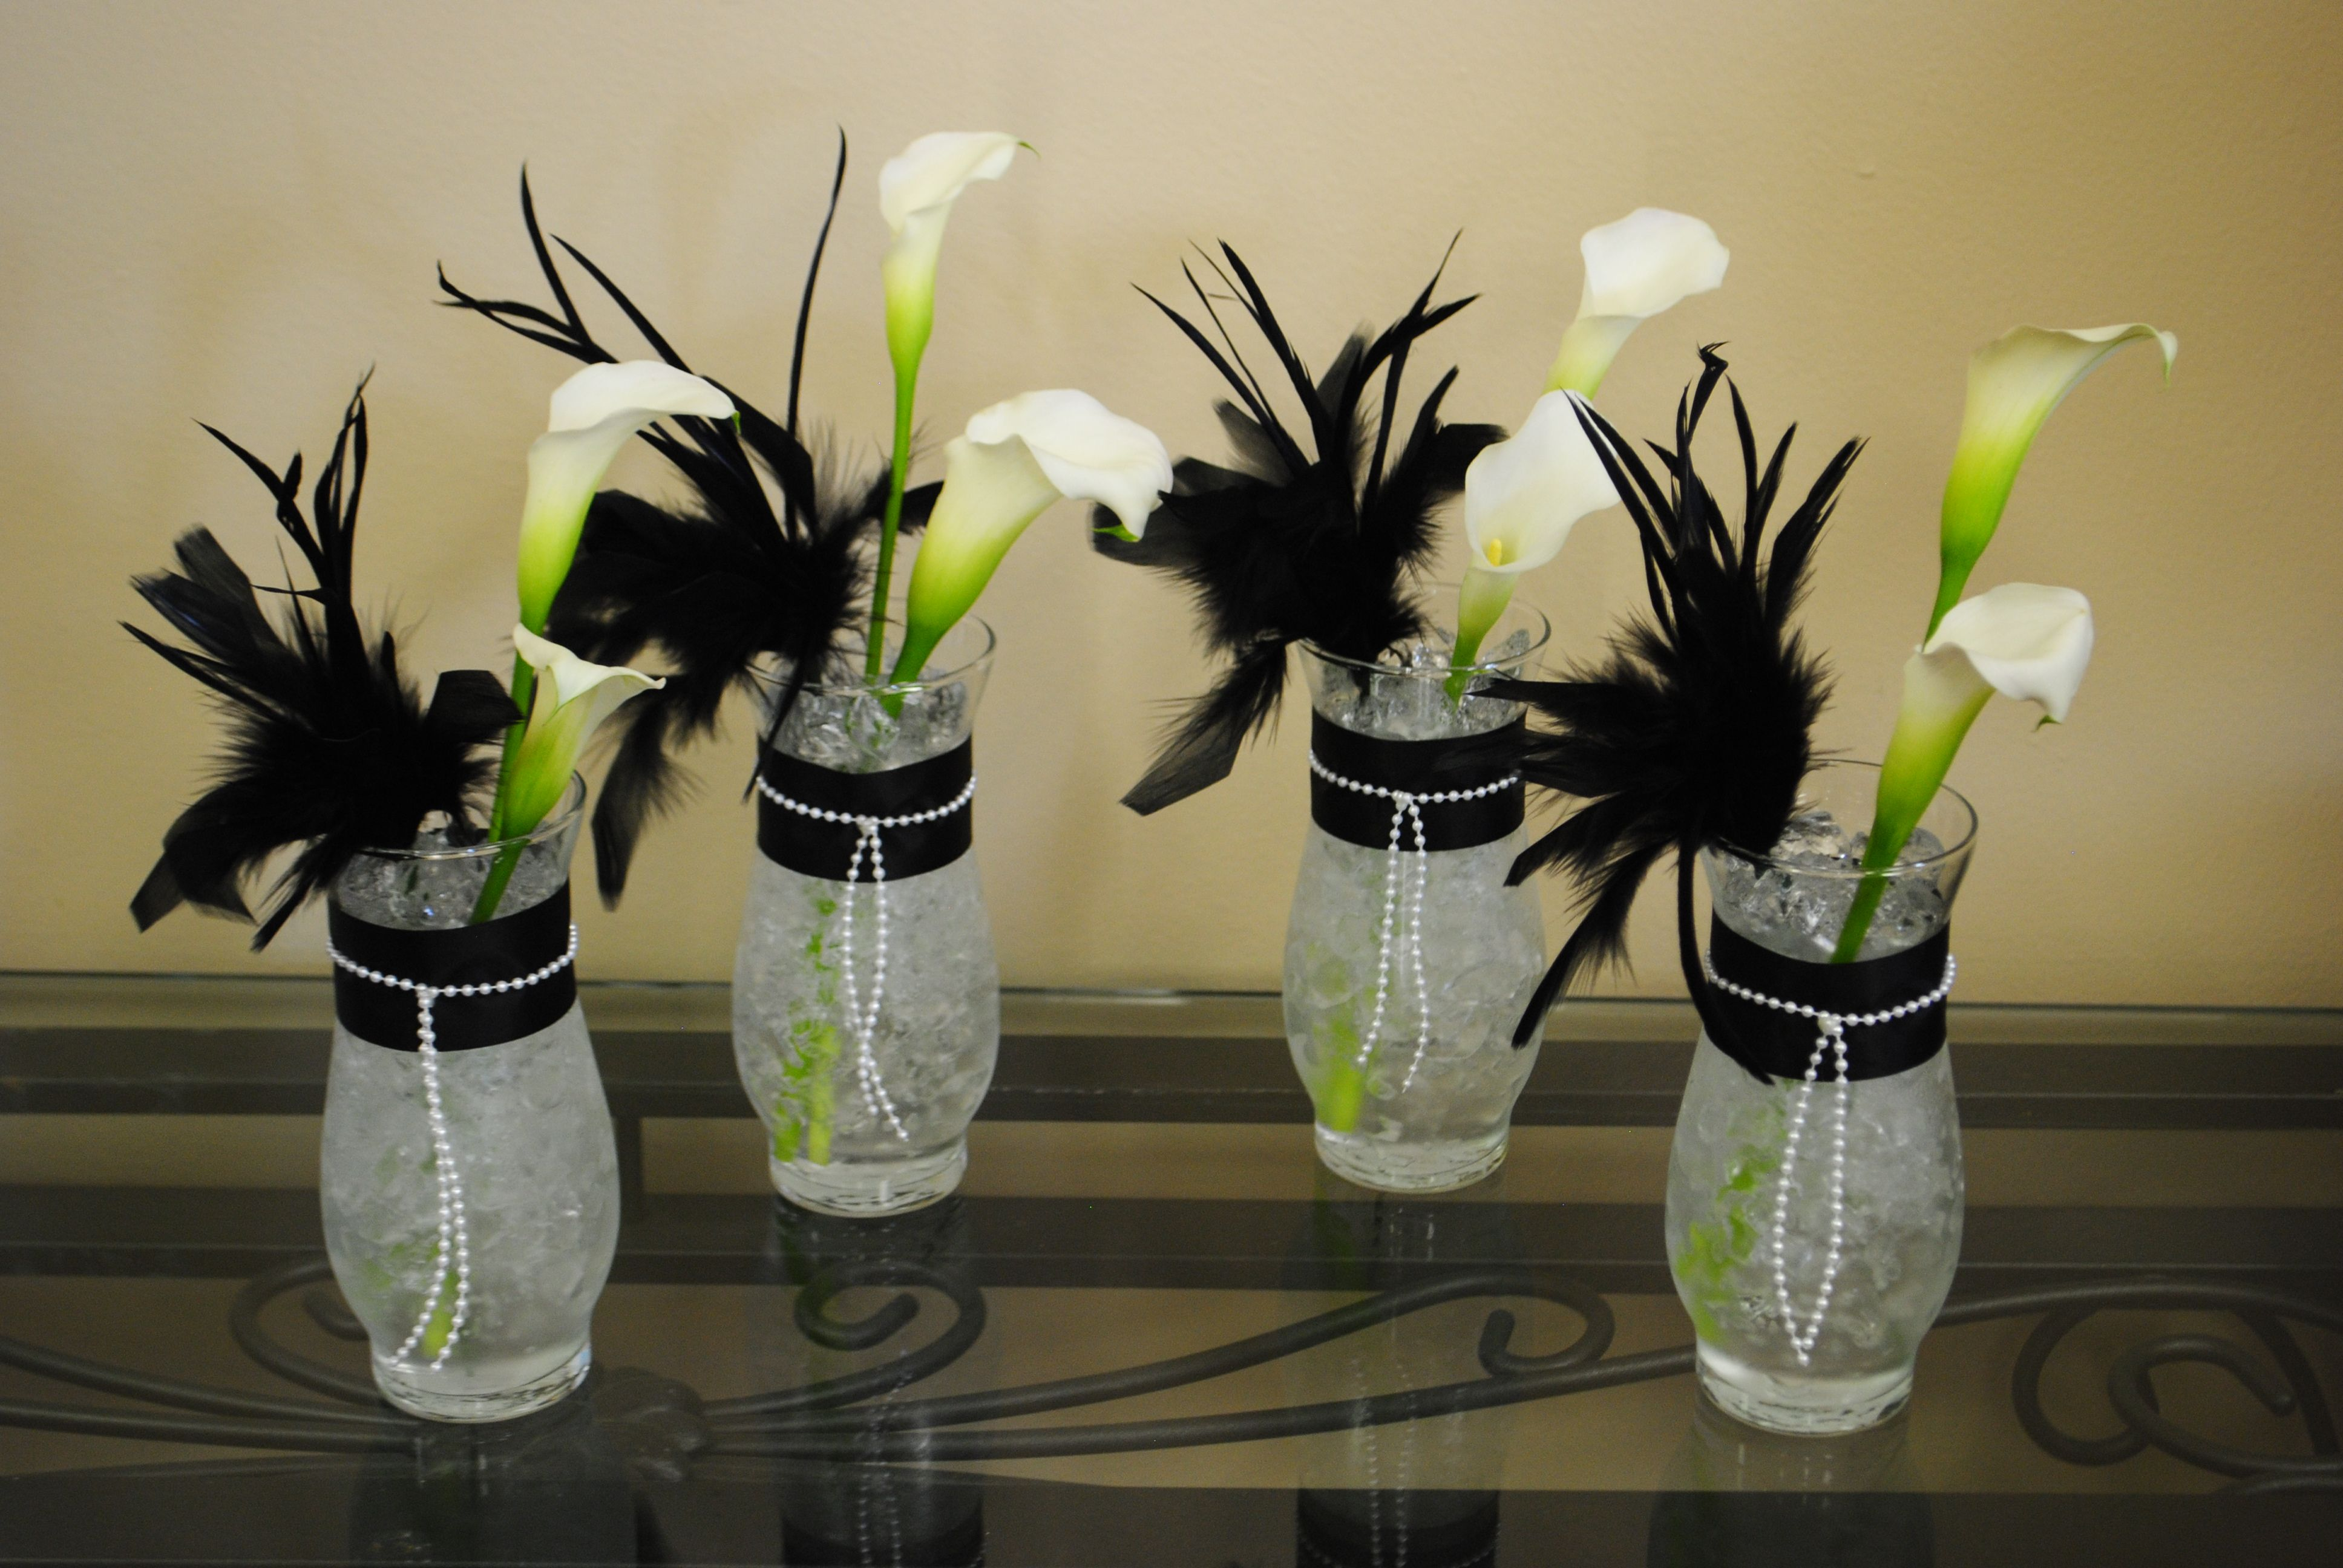 These custom centerpieces are adorned with pearls